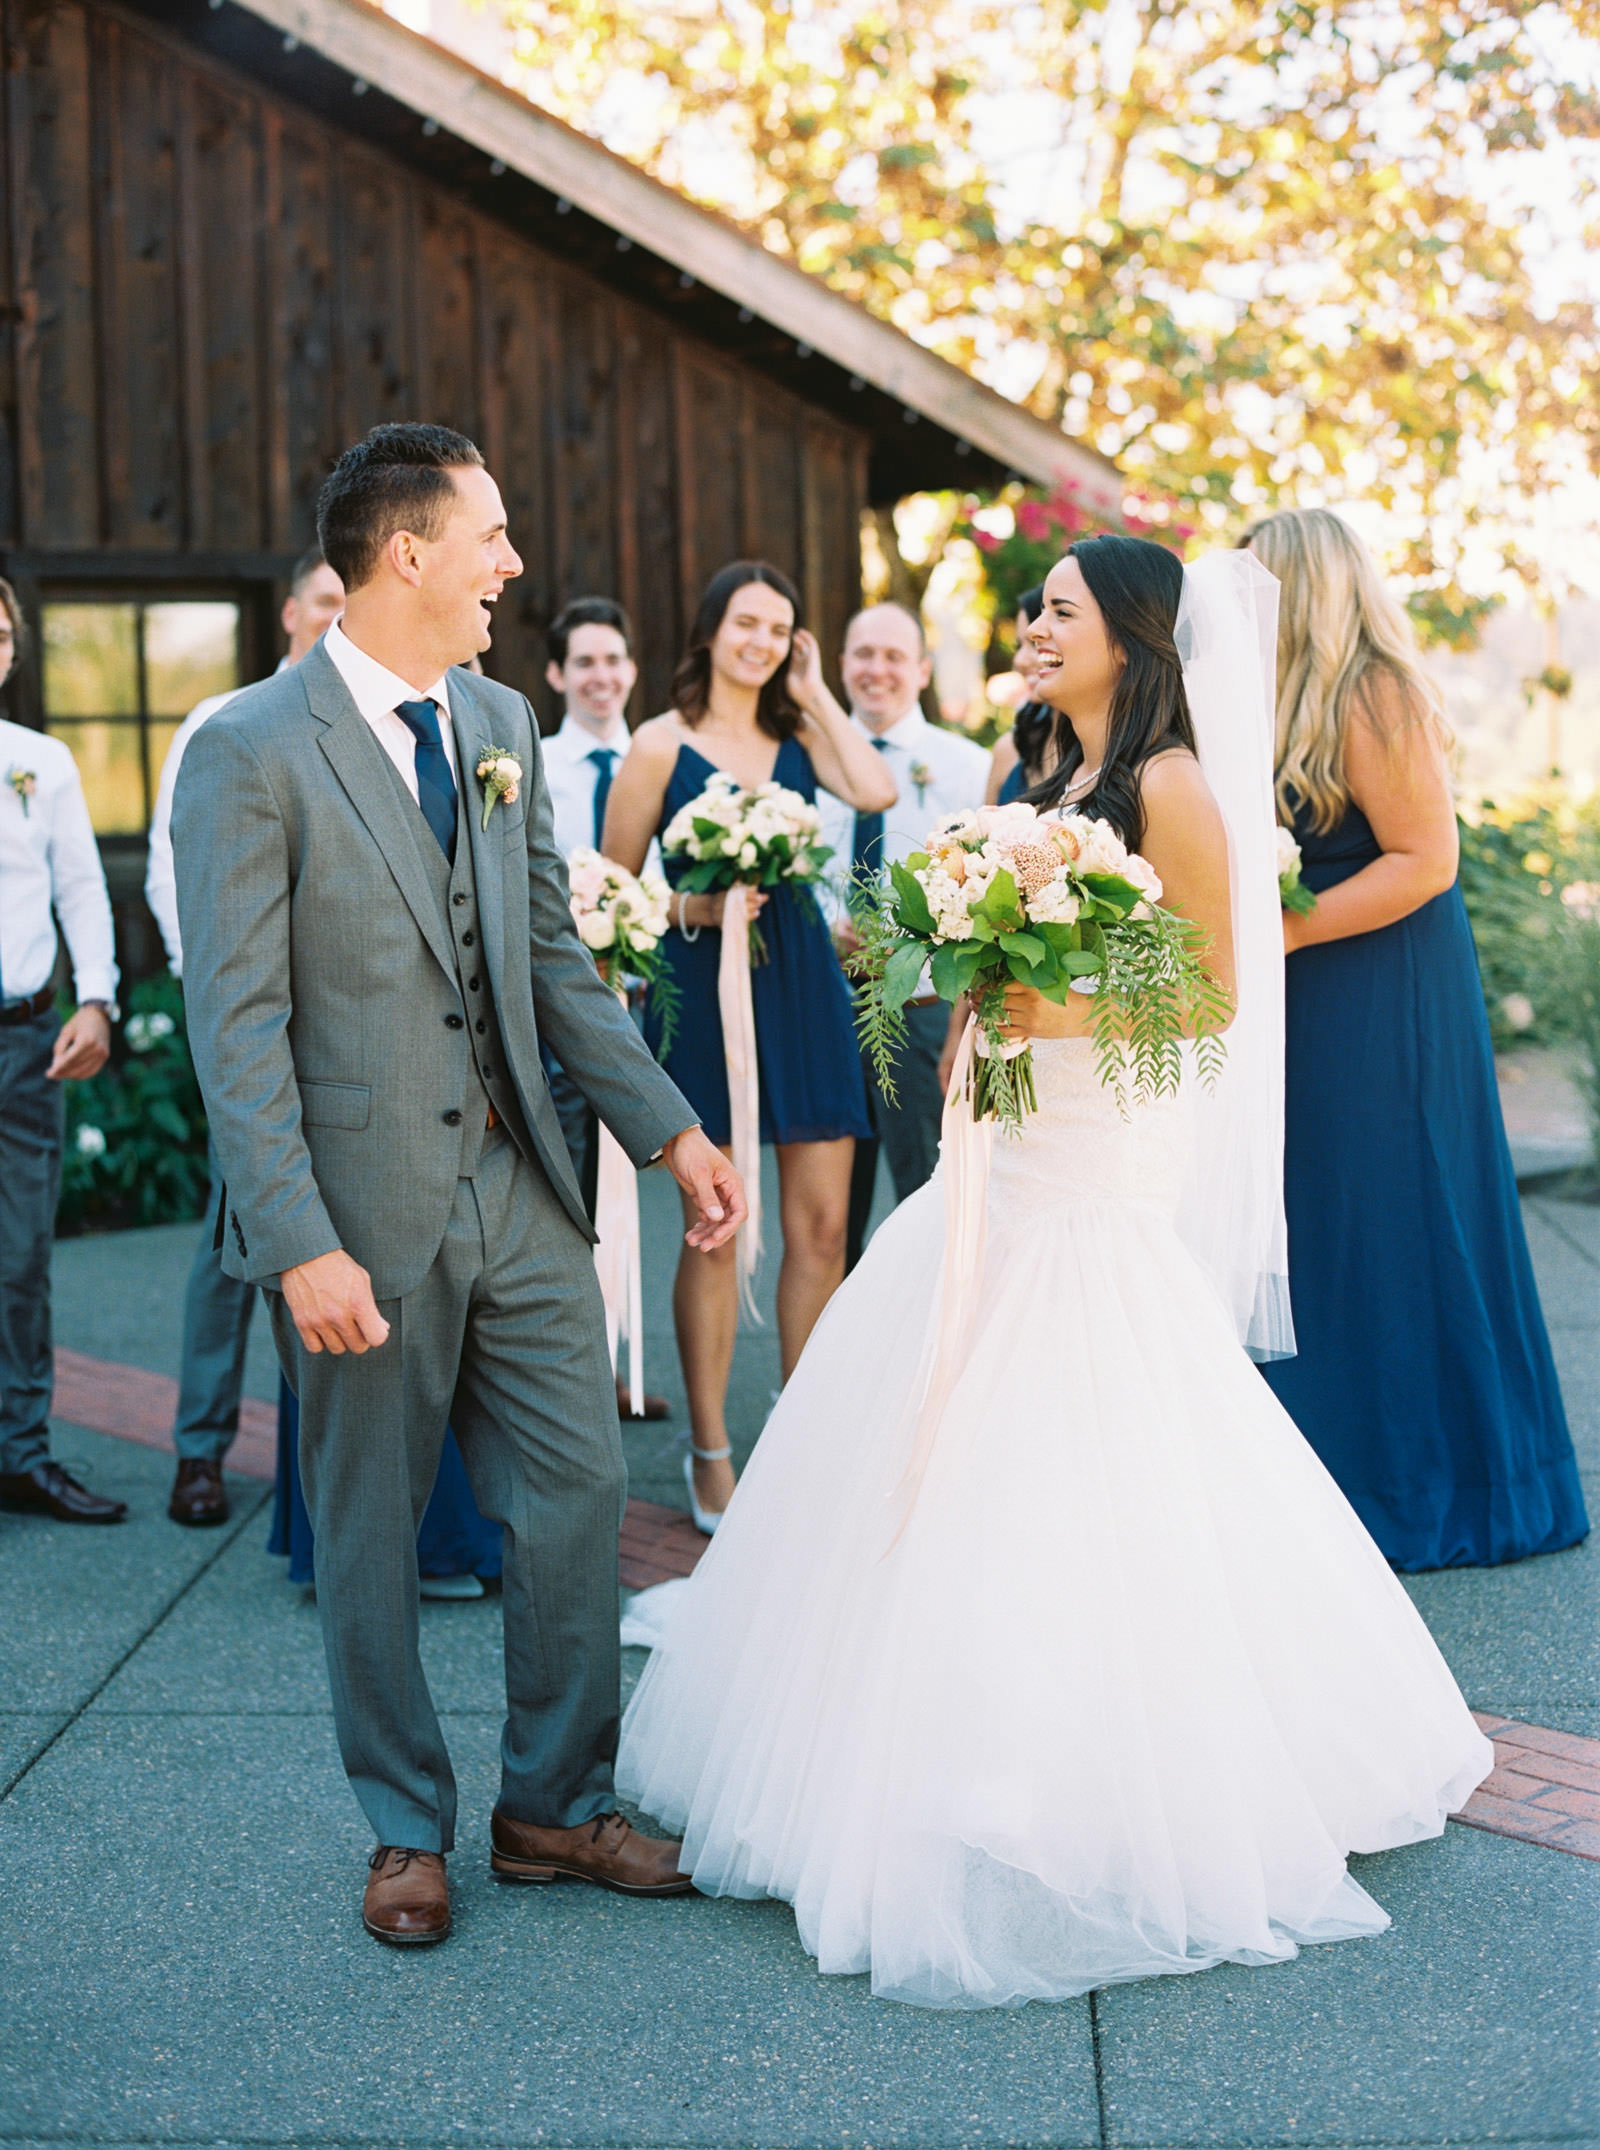 Elegant Bridal Party at Kelley Farms Wedding | Seattle Wedding Photographer Anna Peters